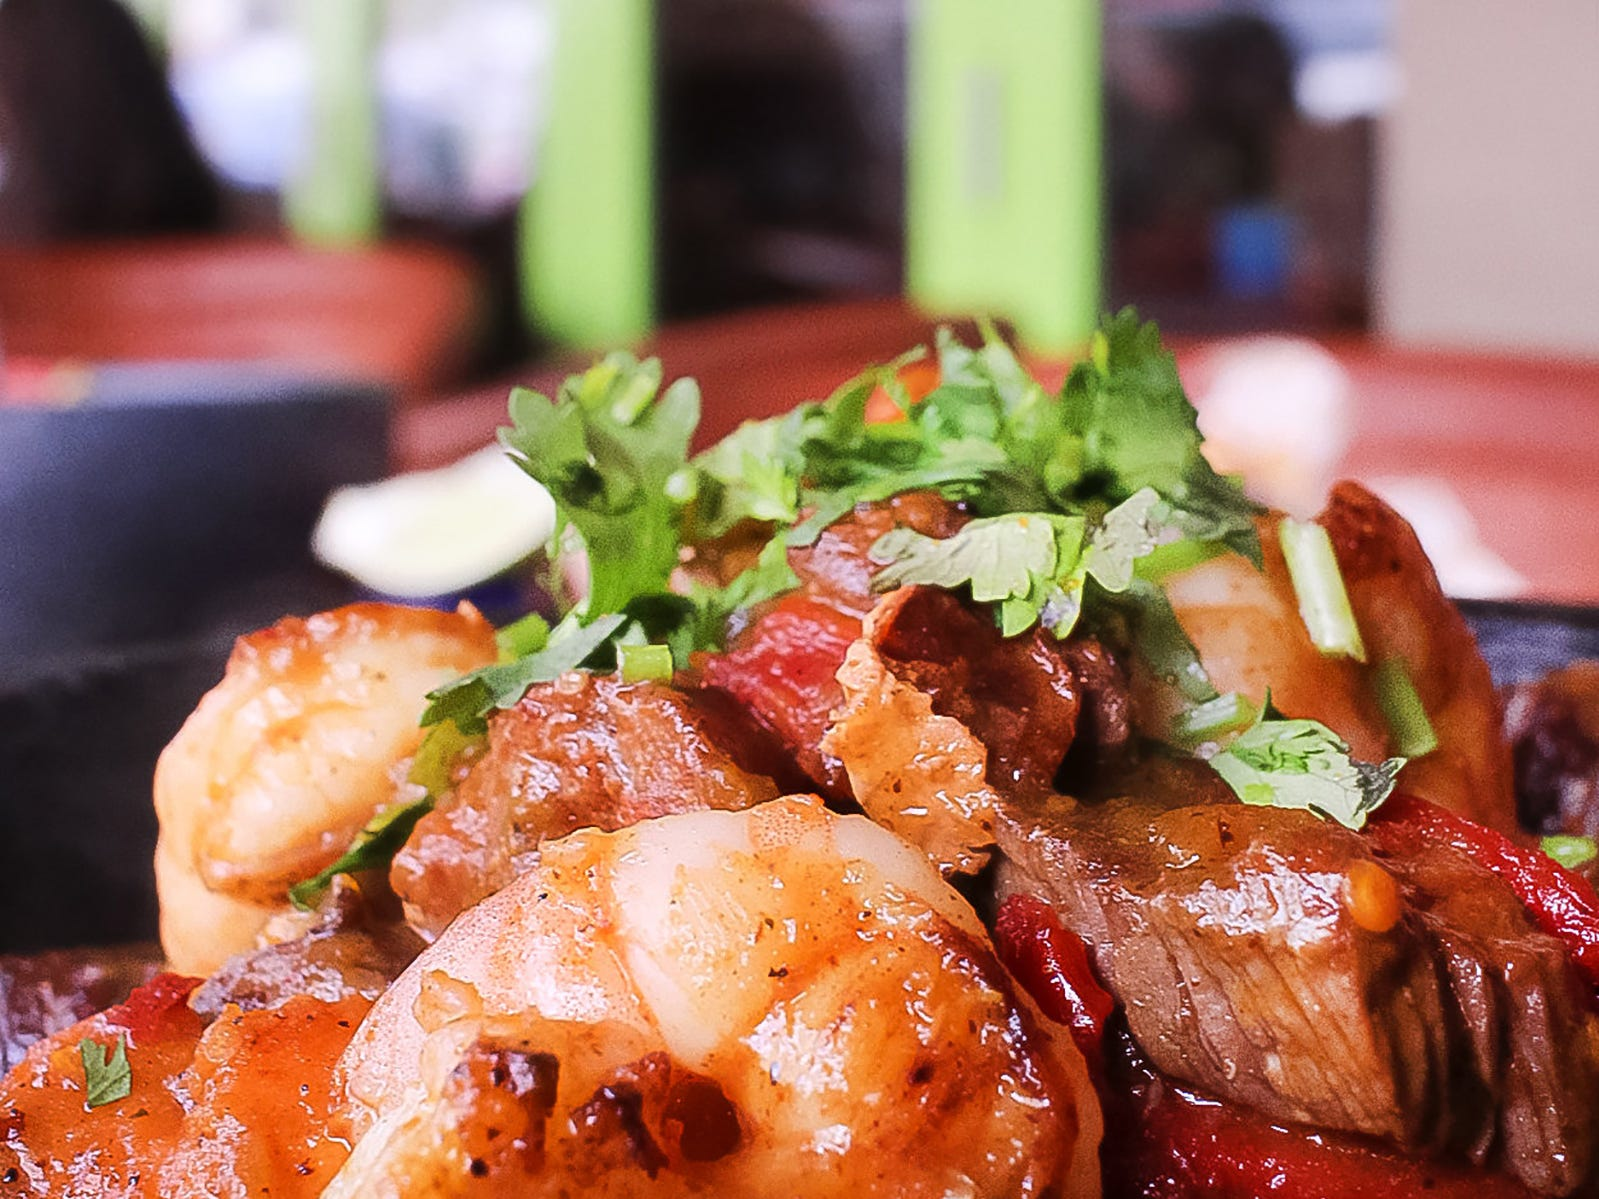 Surf & Turf Molcajetes at Rocco's Tacos & Tequila Bar features marinated grilled steak, chorizo, sweet potatoes, chicken and shrimp in a roasted garlic verde sauce.